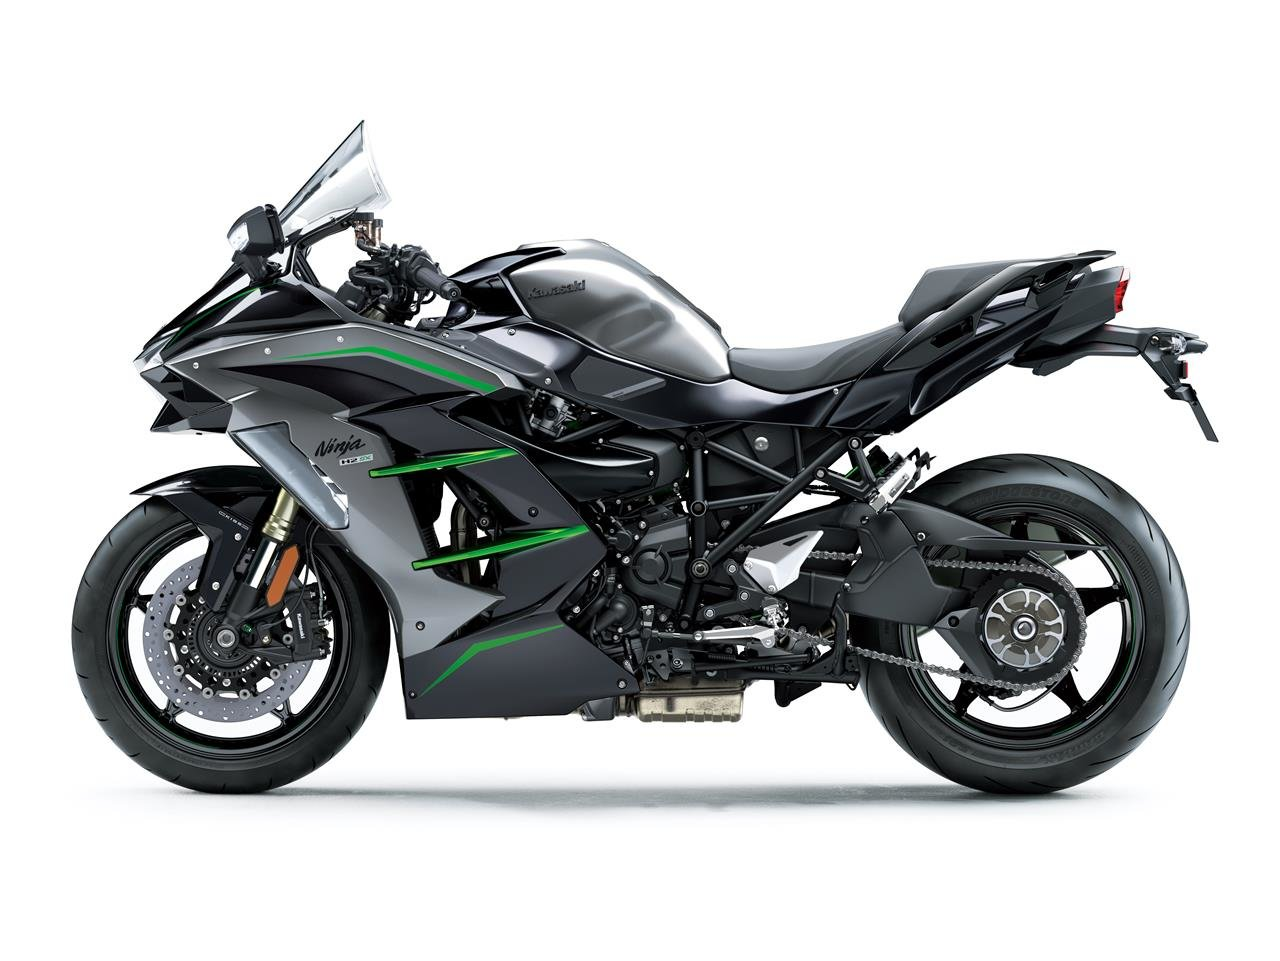 New 2020 Kawasaki Ninja H2 SX SE*£1,000 PAID, FREE Delivery  For Sale (picture 3 of 6)